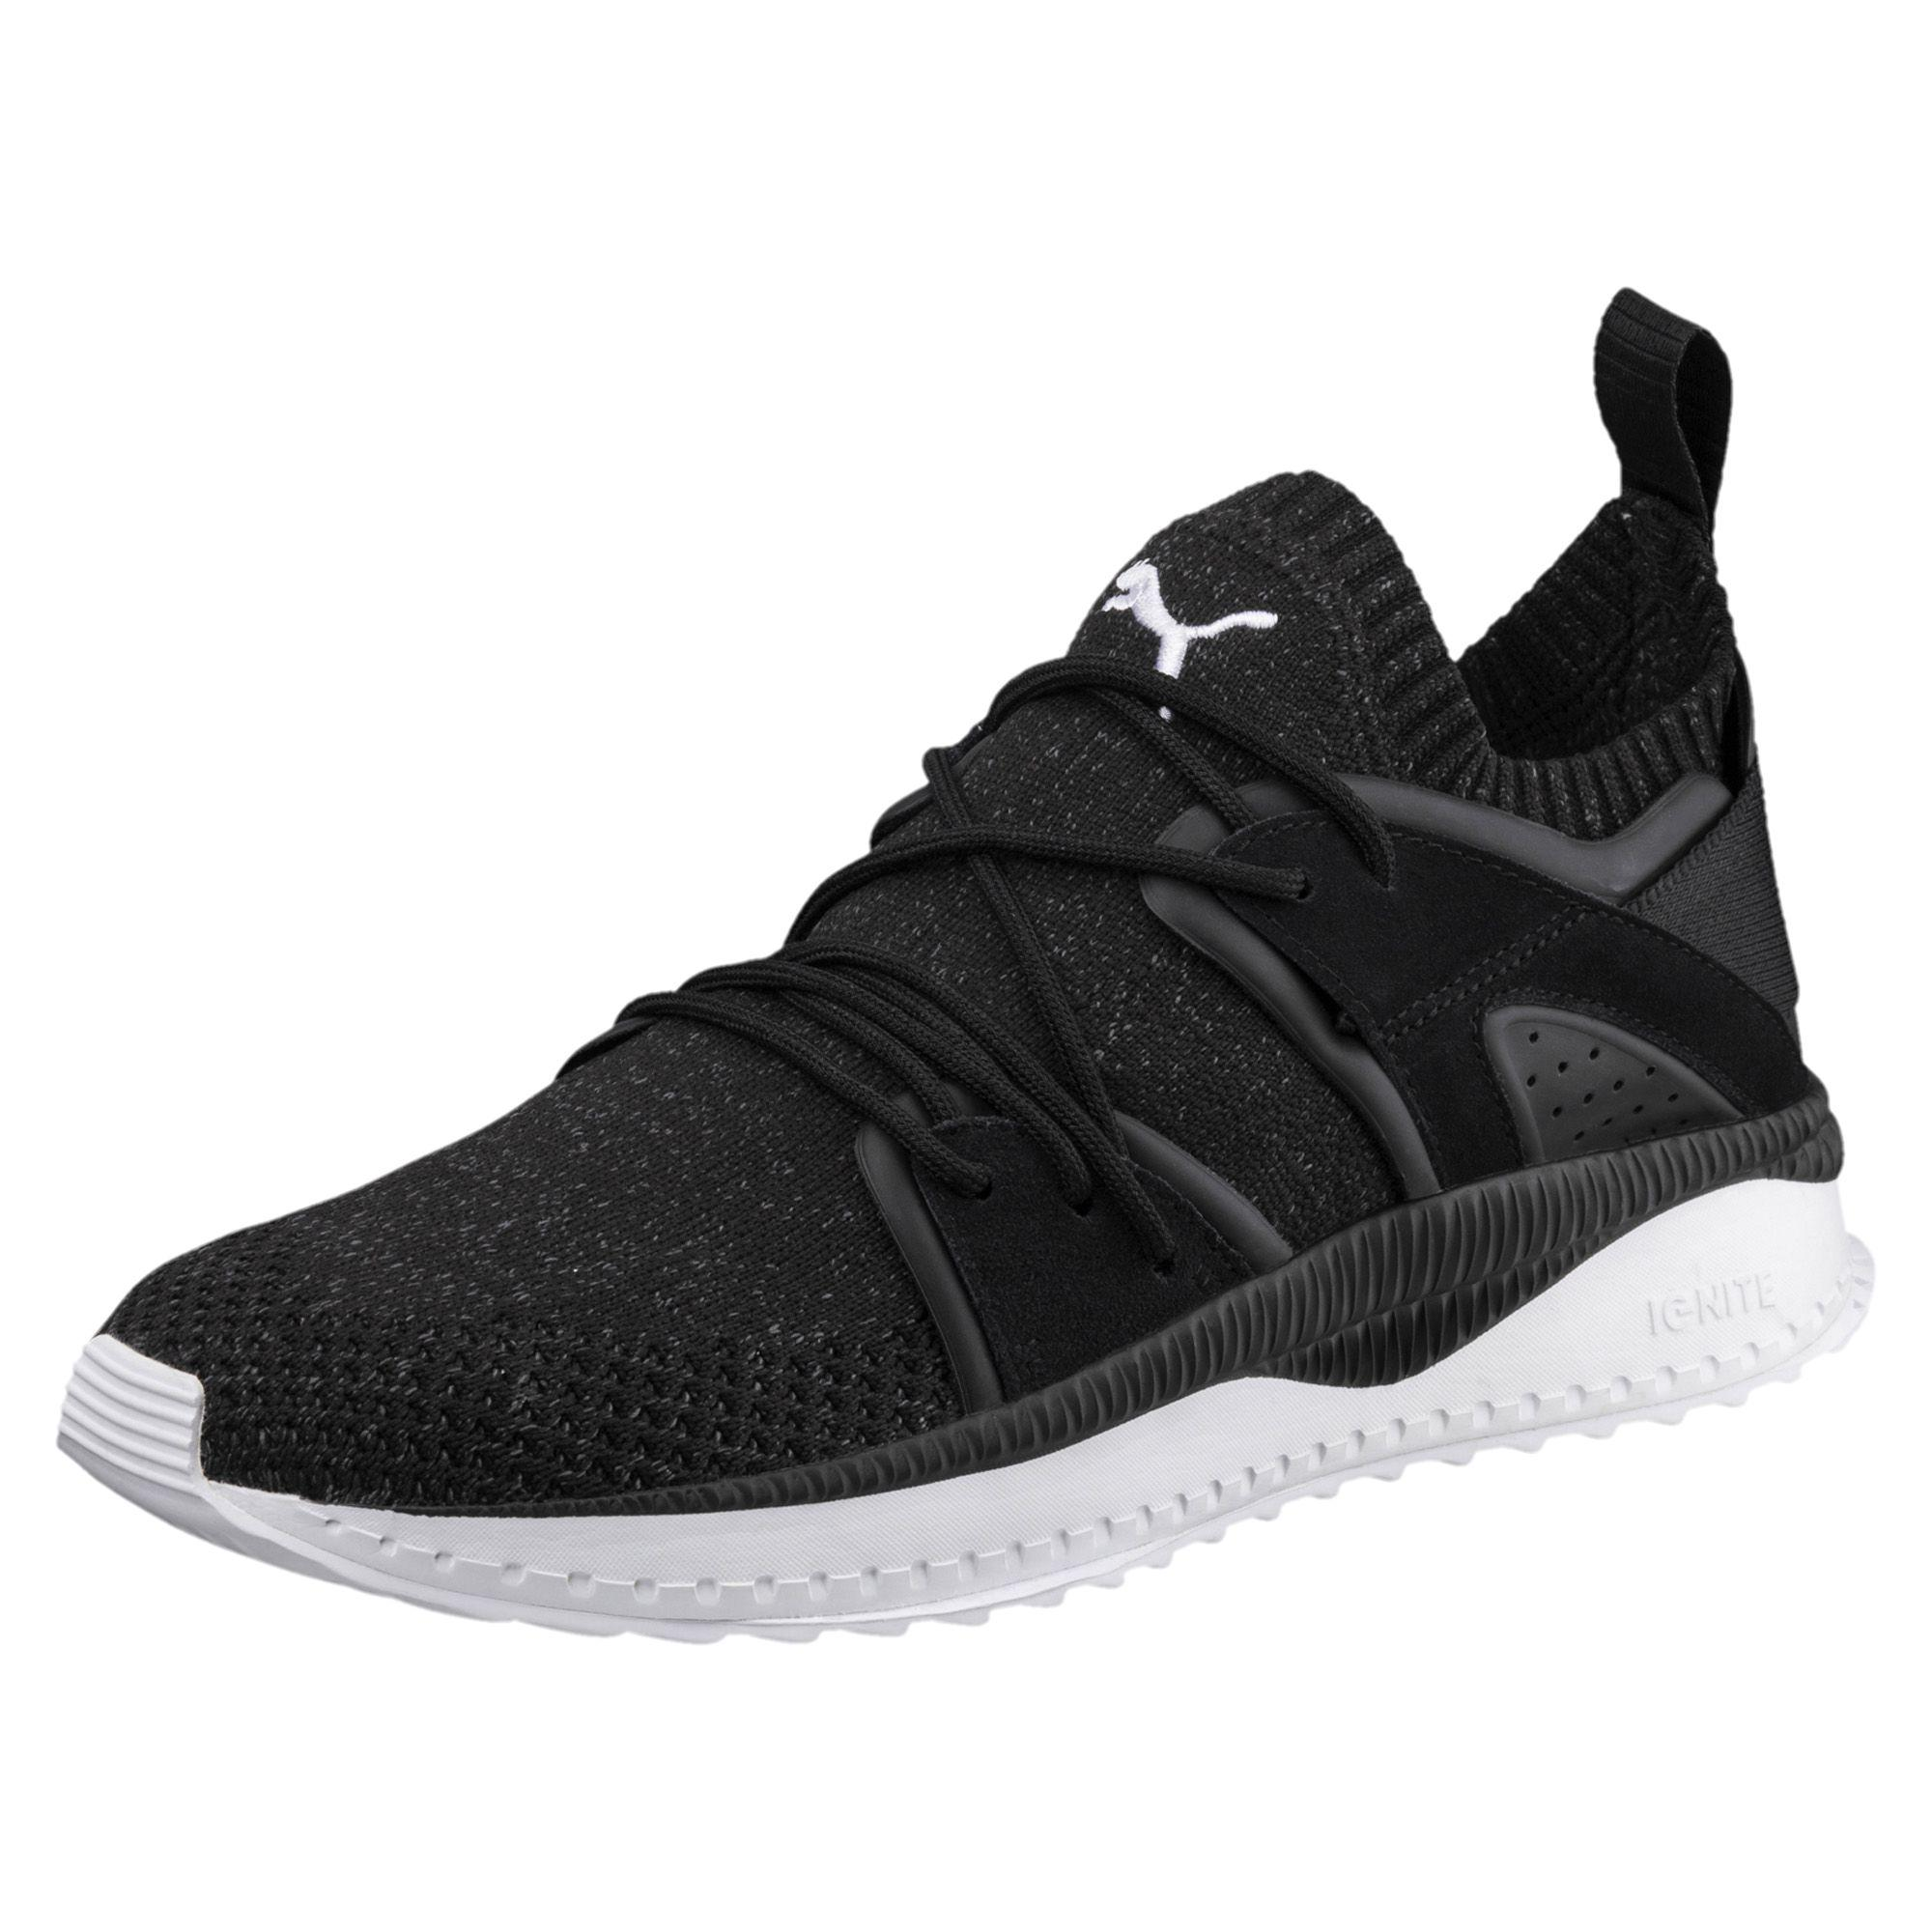 1034bf31ecd Lyst - PUMA Tsugi Blaze Evoknit Trainers in Black for Men